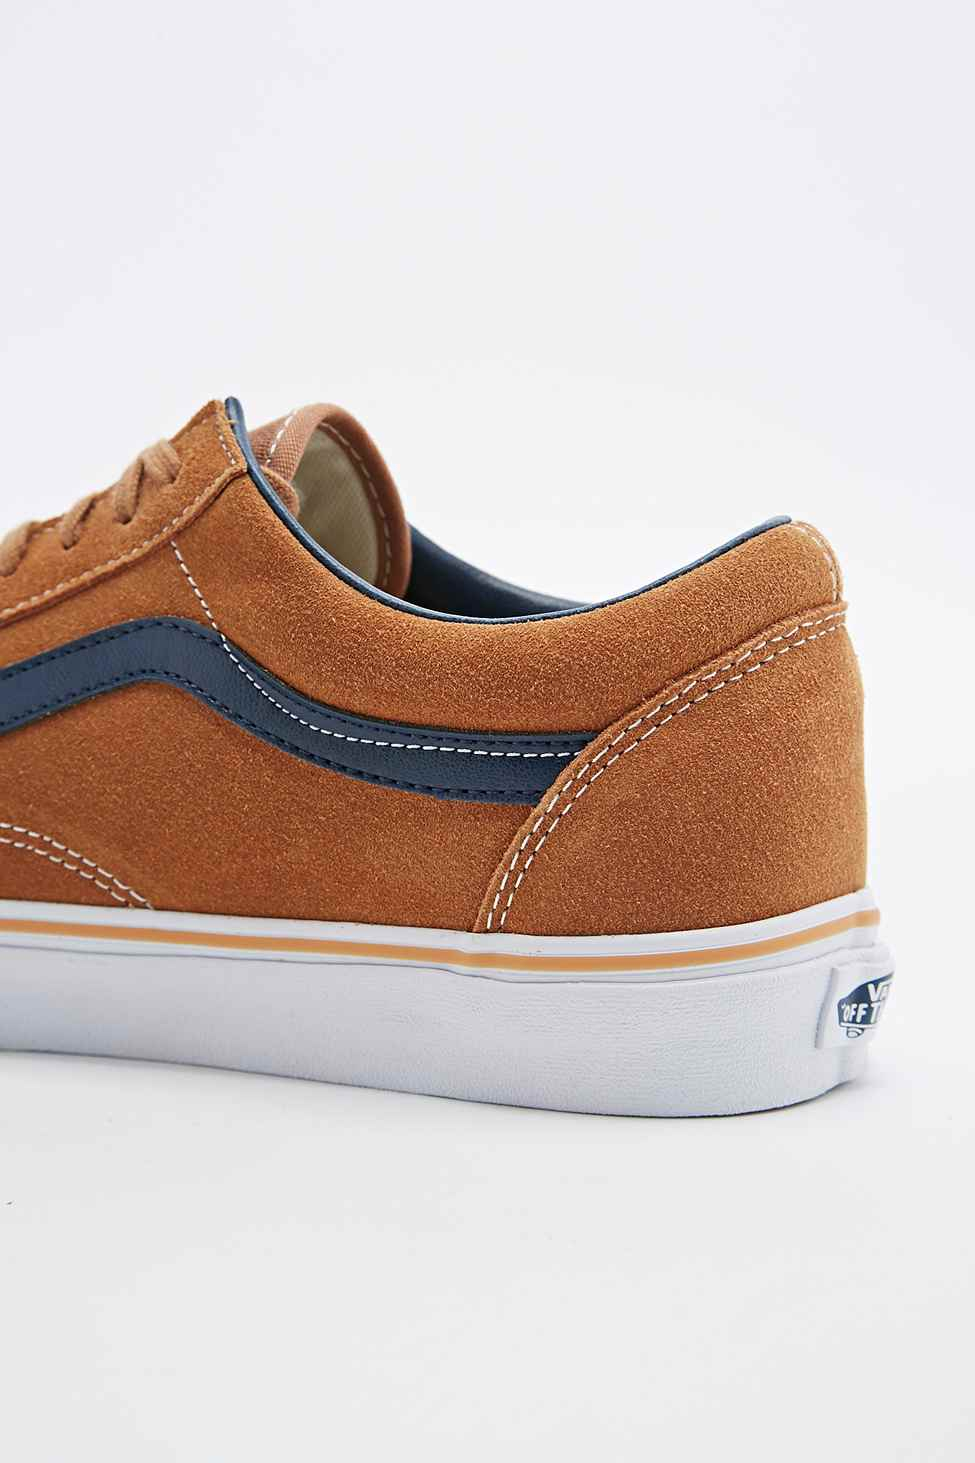 7a2b7e9b97 For Suede In Vans Skool Trainers Sugar Old Lyst Brown Men PkZOXiu